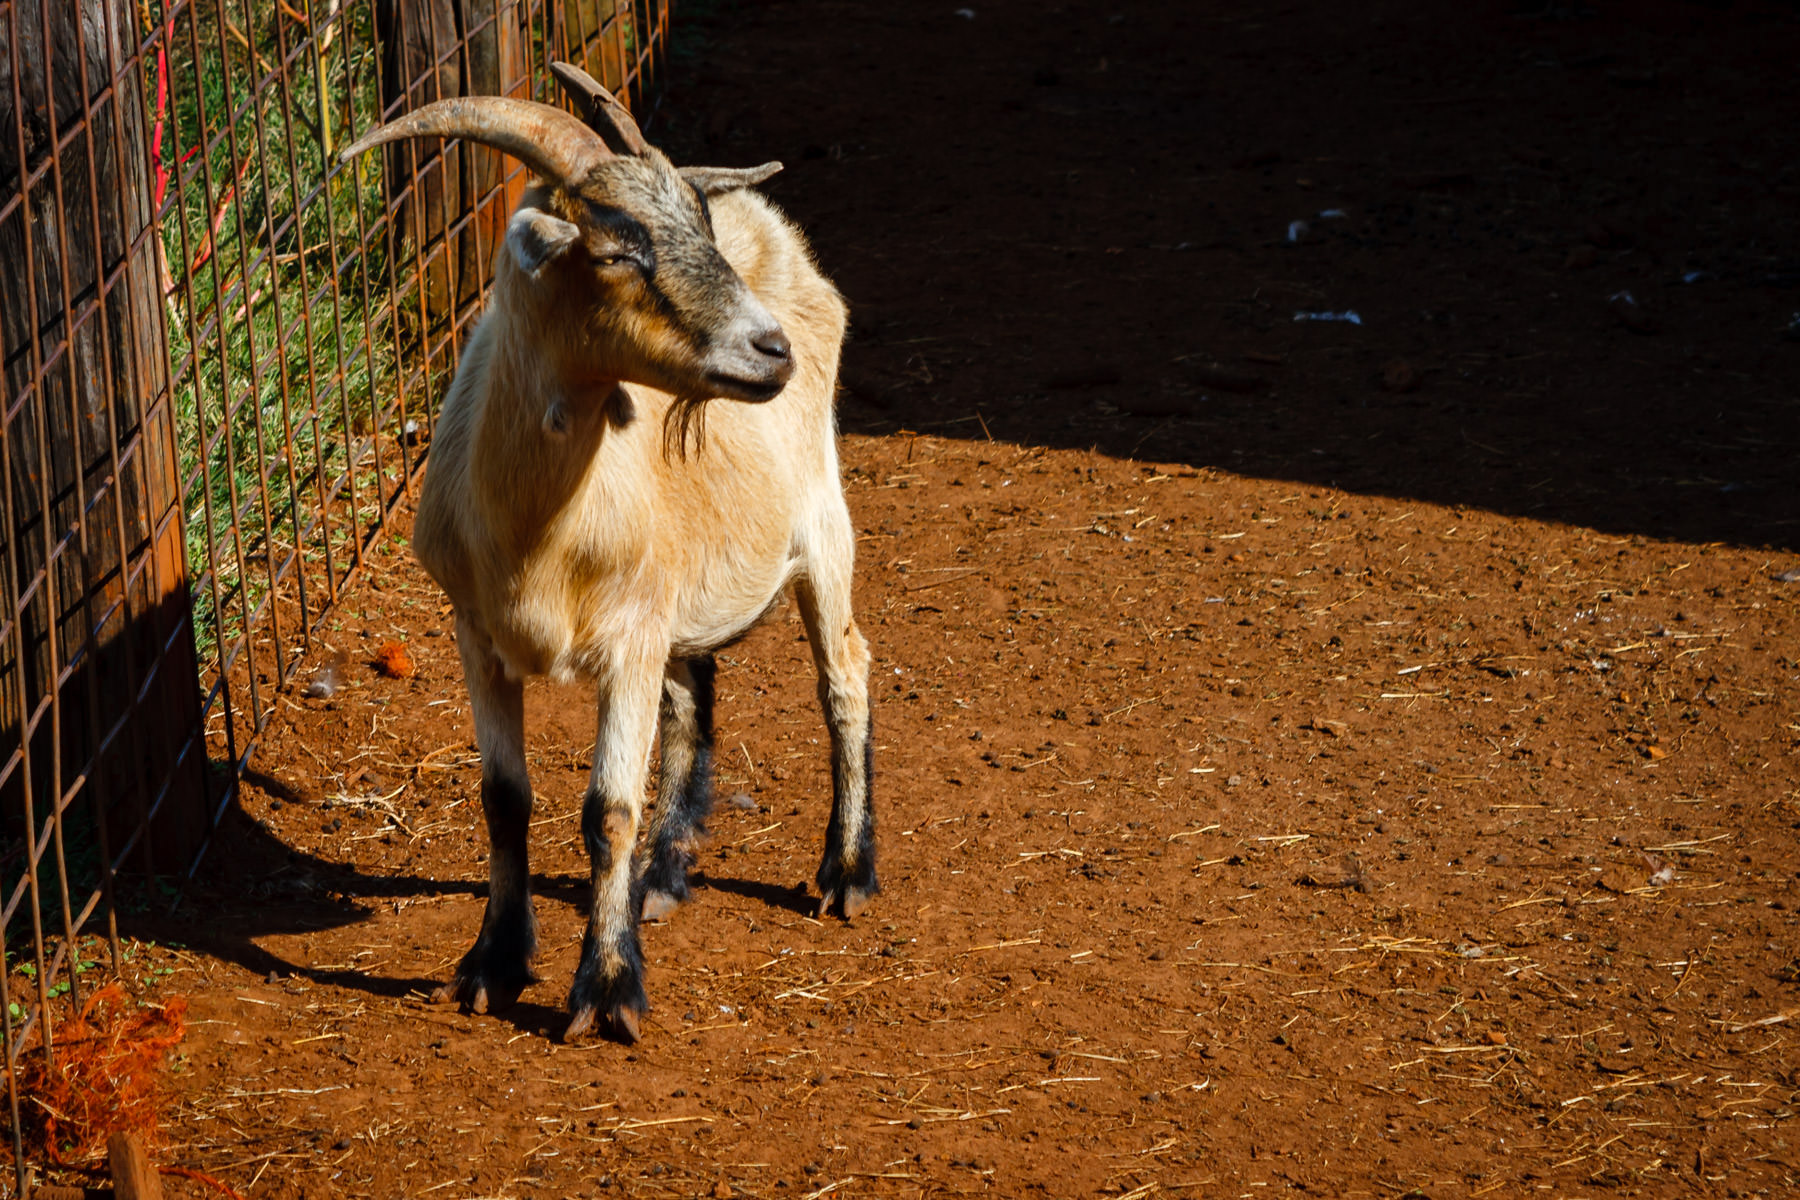 A goat found at Moore Farms, Bullard, Texas.